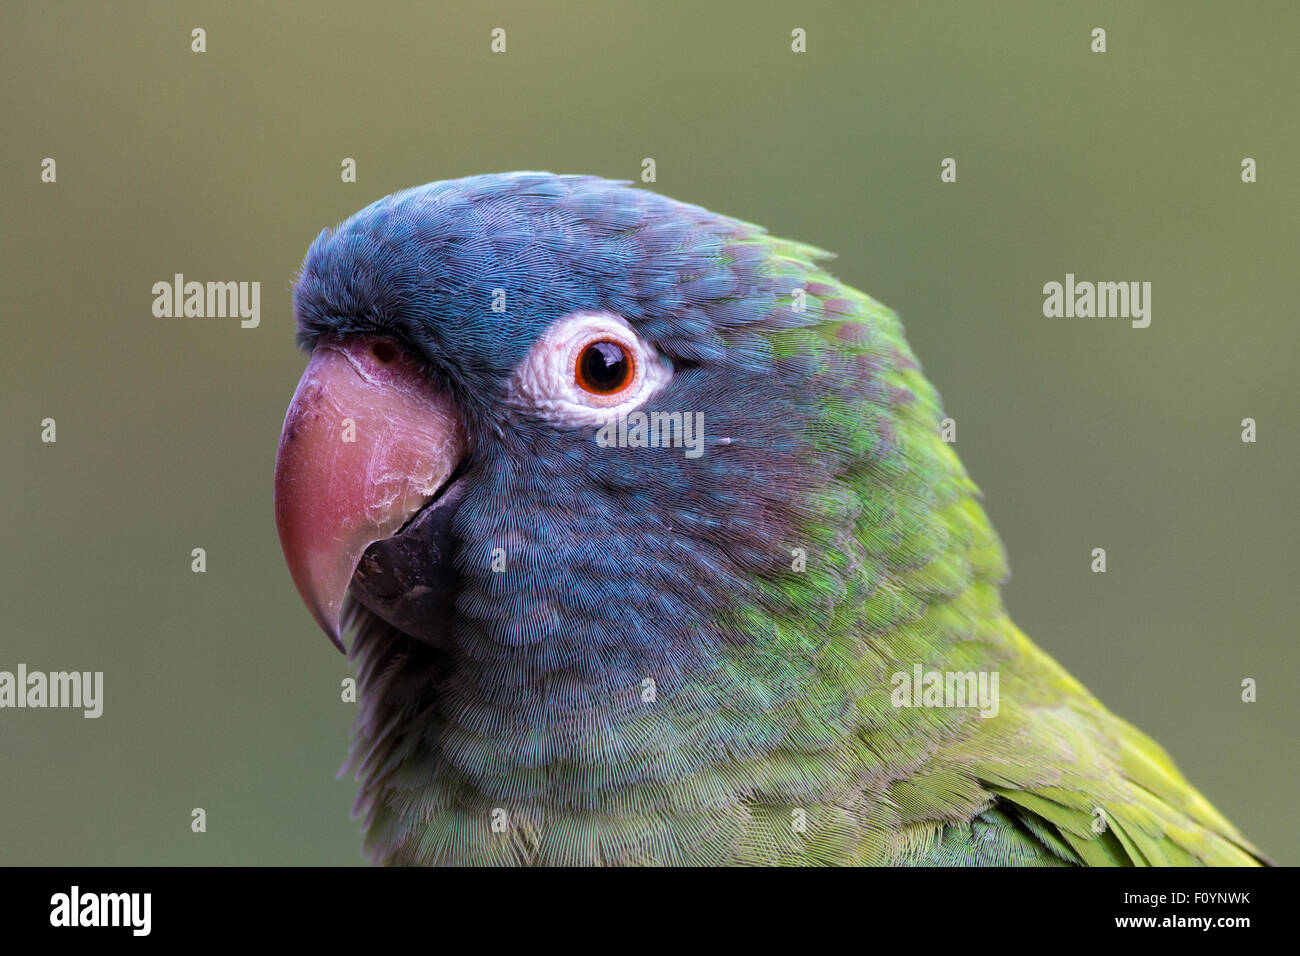 Blue crowned conure - Stock Image